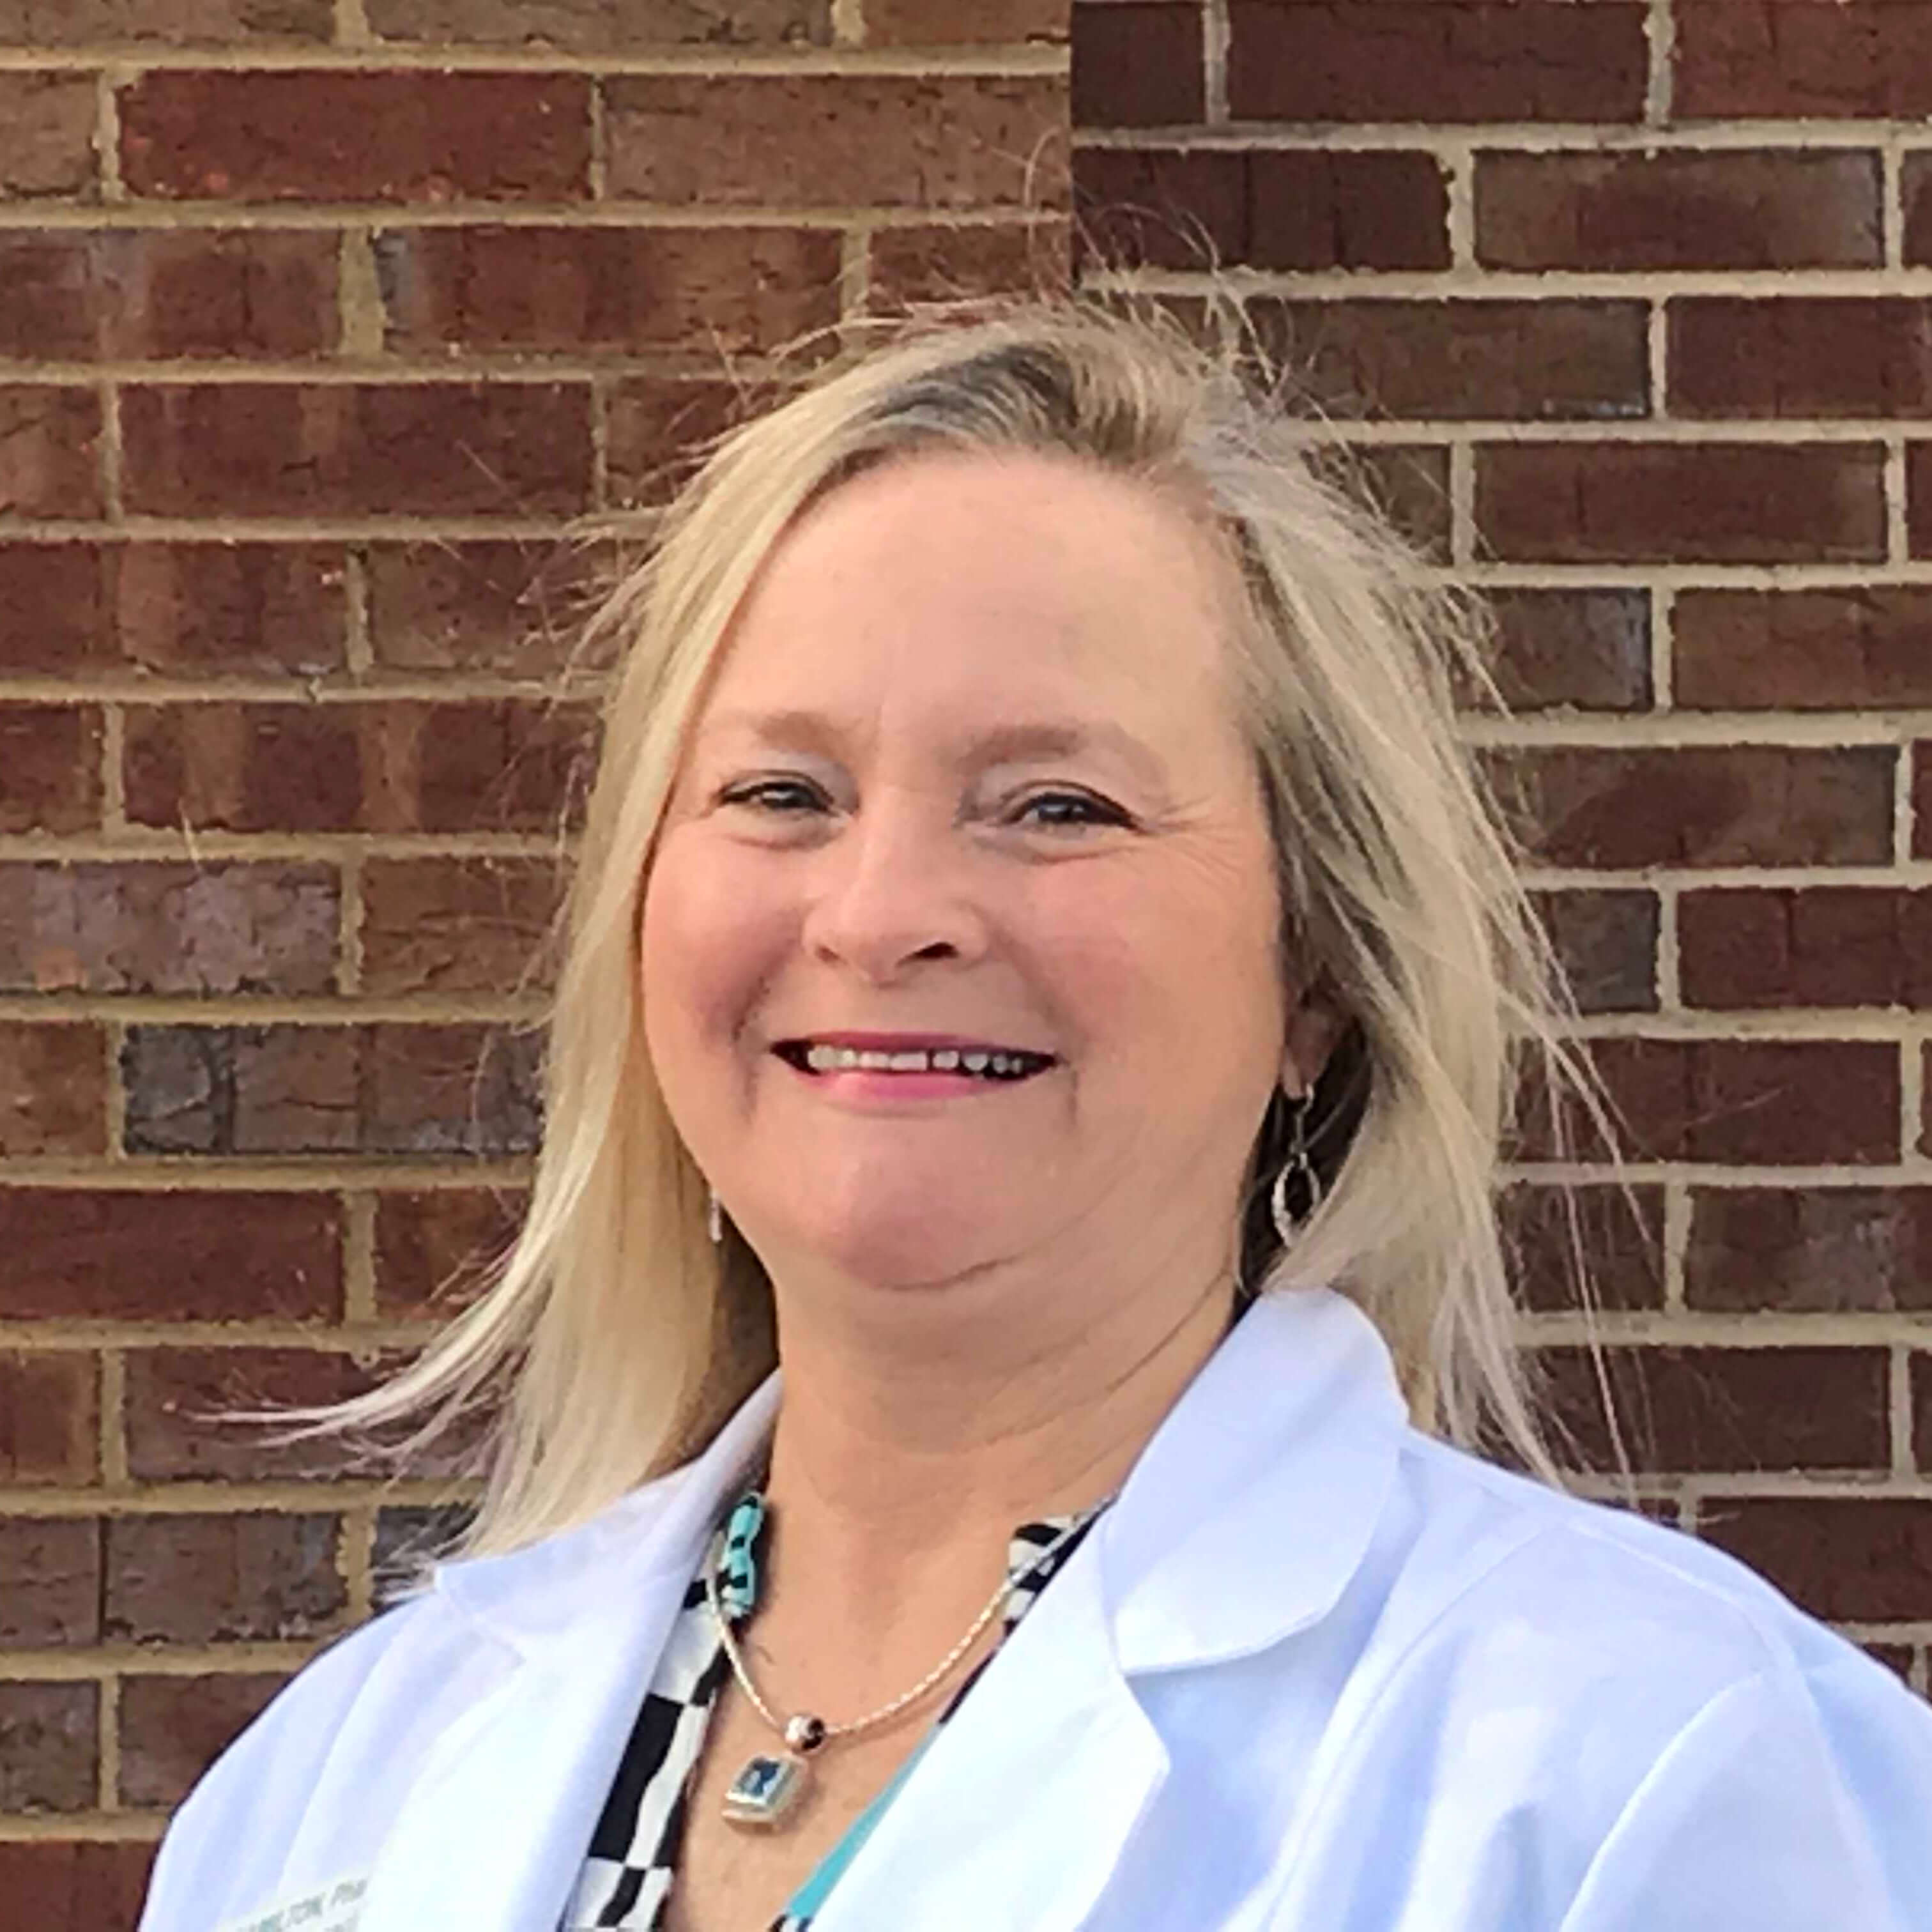 Becky Hamilton received her Pharm. D. from Mercer University Southern School of Pharmacy.  Additionally, she completed an American Pharmacists Association-accredited residency program in Drug Information at Grady Memorial Hospital and Mercer. One can find her at Lacey's Long Term Care Pharmacy as the Drug Information Specialist, and a Consultant Pharmacist. She has practiced pharmacy at Lacey's for over 11 years. Becky loves to go boating, hiking, and generally be outdoors. But, what is most important to her is spending time with her family and friends.